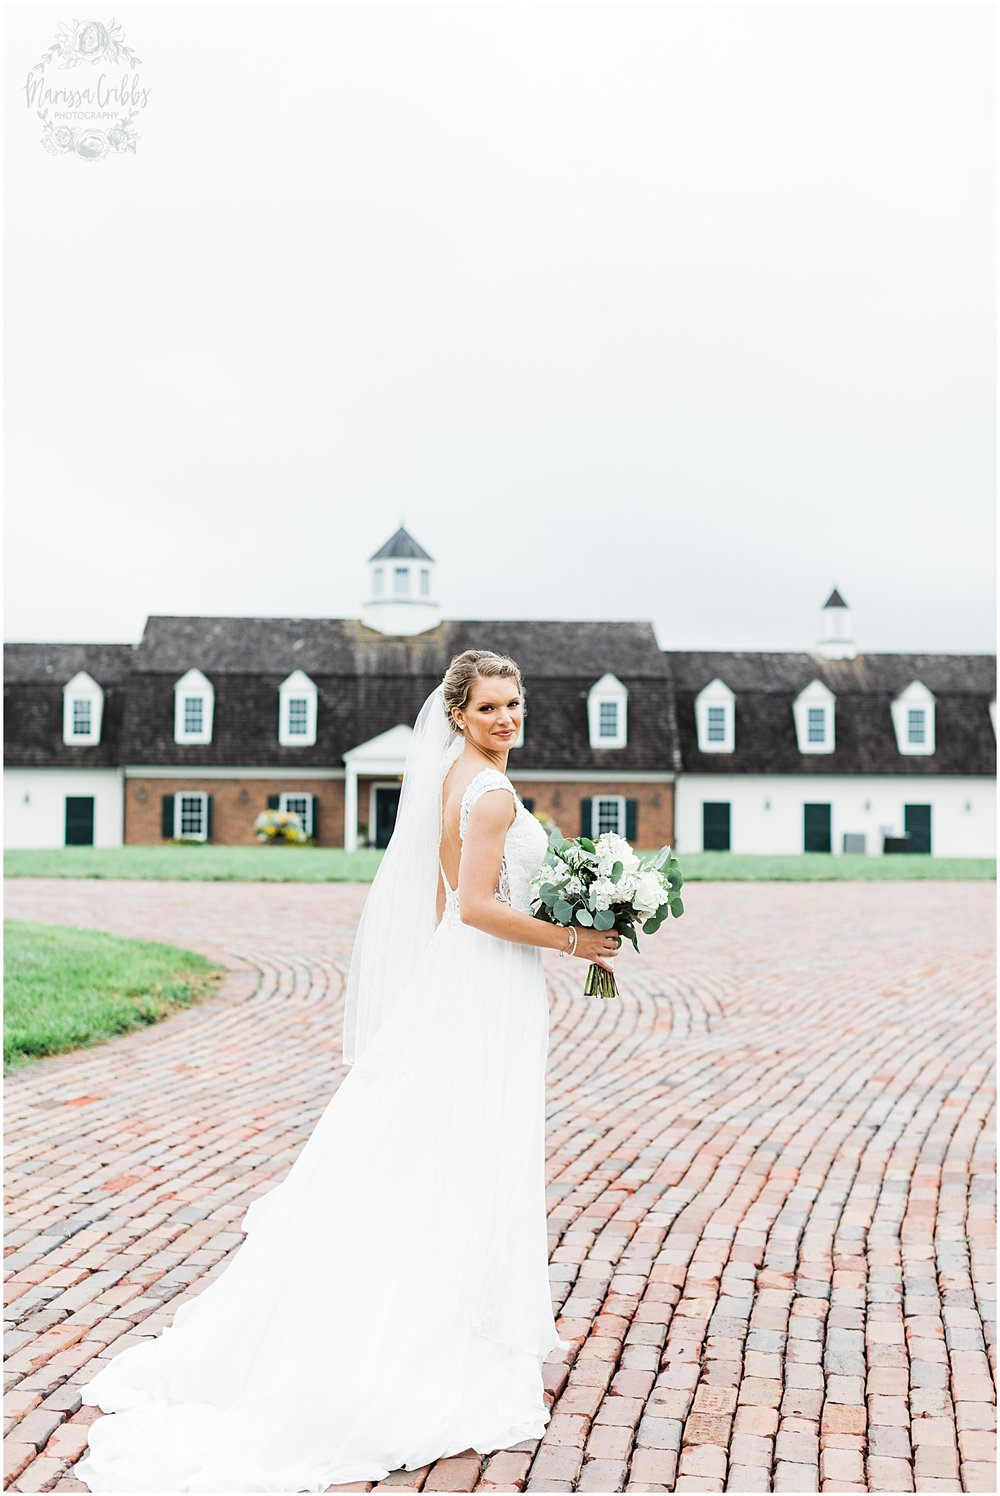 ROUNKLES WEDDING | MARISSA CRIBBS PHOTOGRAPHY | MILDALE FARM_6125.jpg